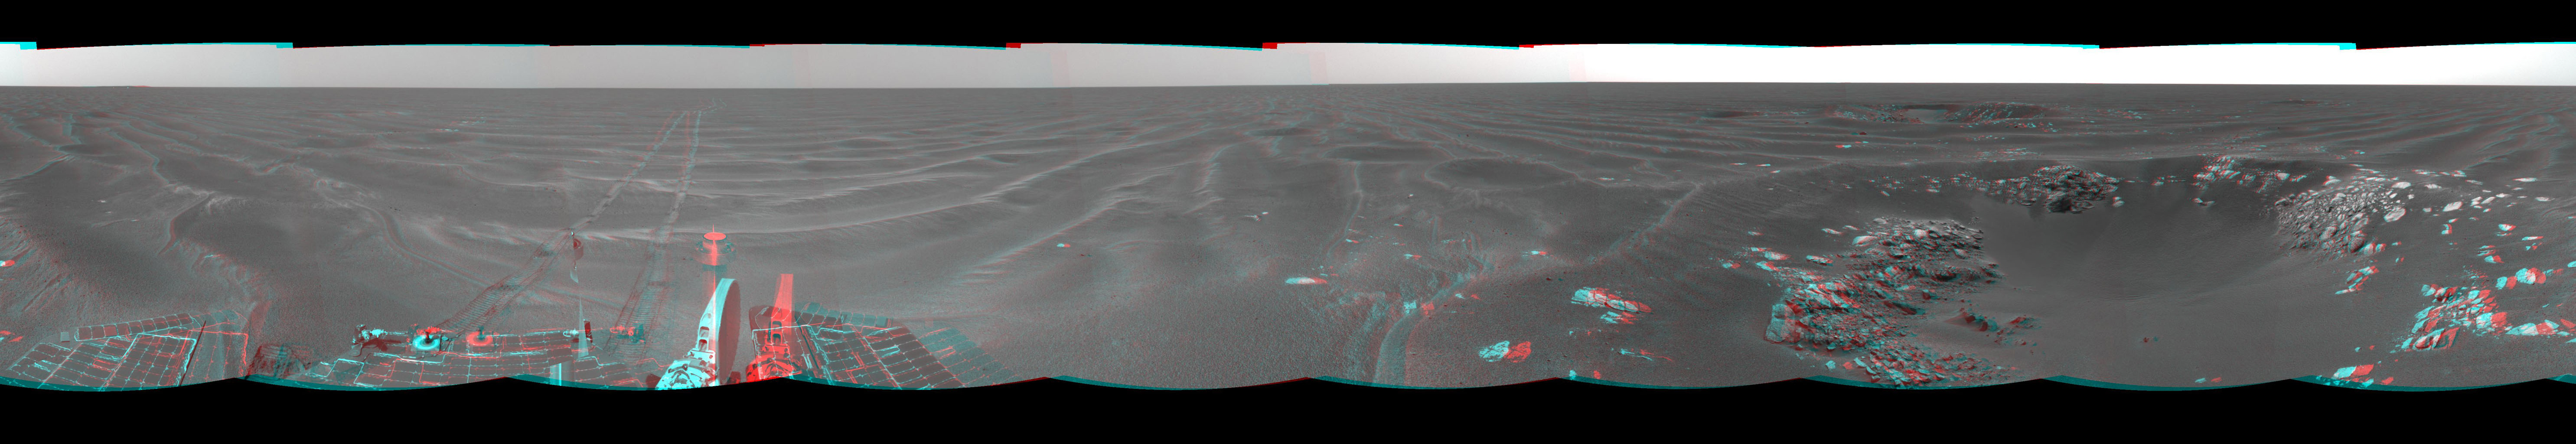 On Feb. 24, 2005, NASA's Mars Exploration Rover Opportunity had driven about 73 meters (240 feet) and reached the eastern edge of a small crater dubbed 'Naturaliste,' 3-D glasses are necessary to view this image.